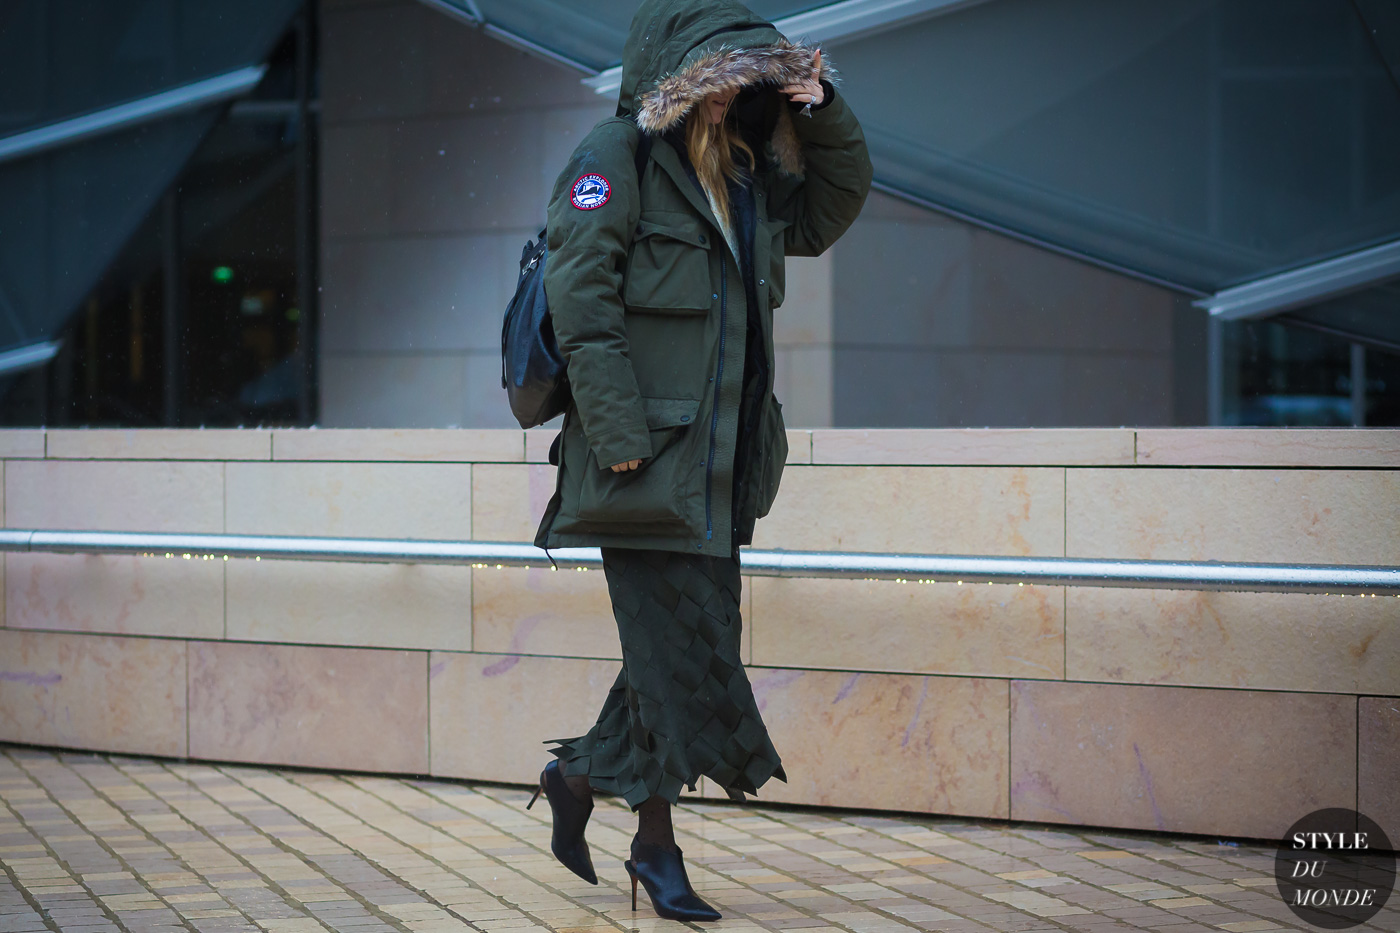 Khaki parka Between the shows by STYLEDUMONDE Street Style Fashion Photography